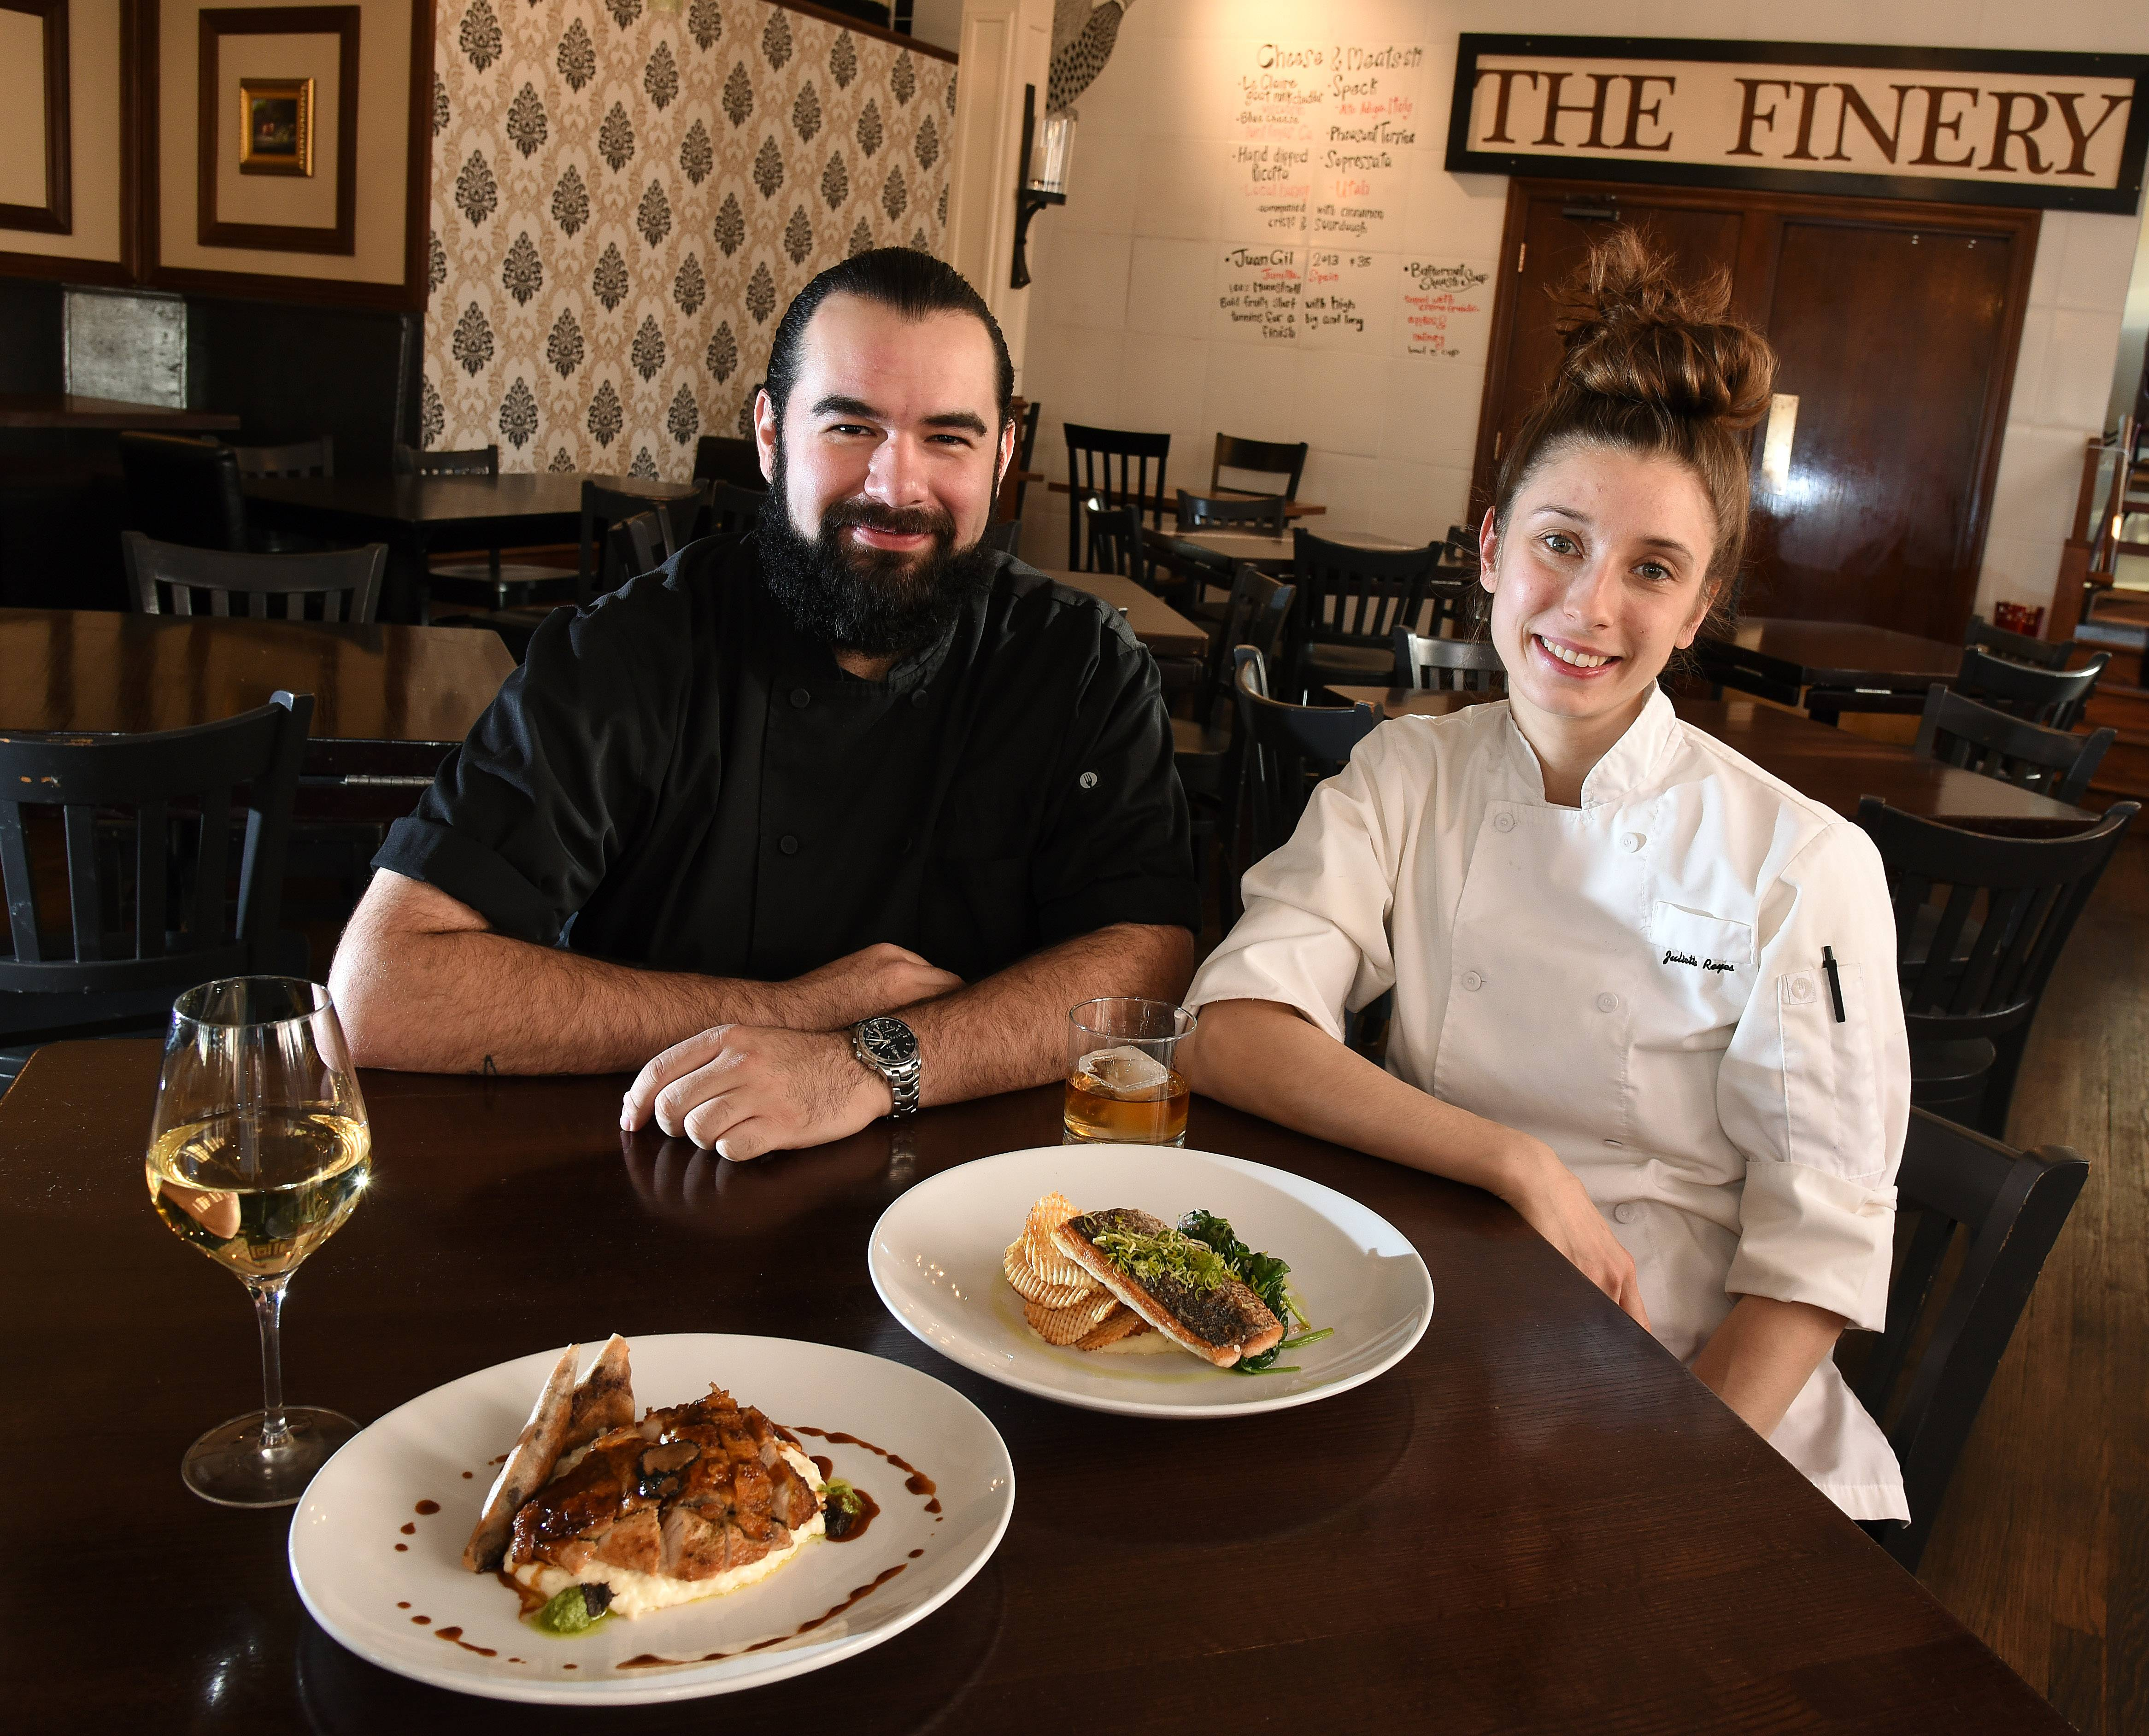 David and Juliette Reyes, owners of The Finery & Blacksmith Bar in St. Charles, pride themselves on their restaurant's farm-to-table concept.